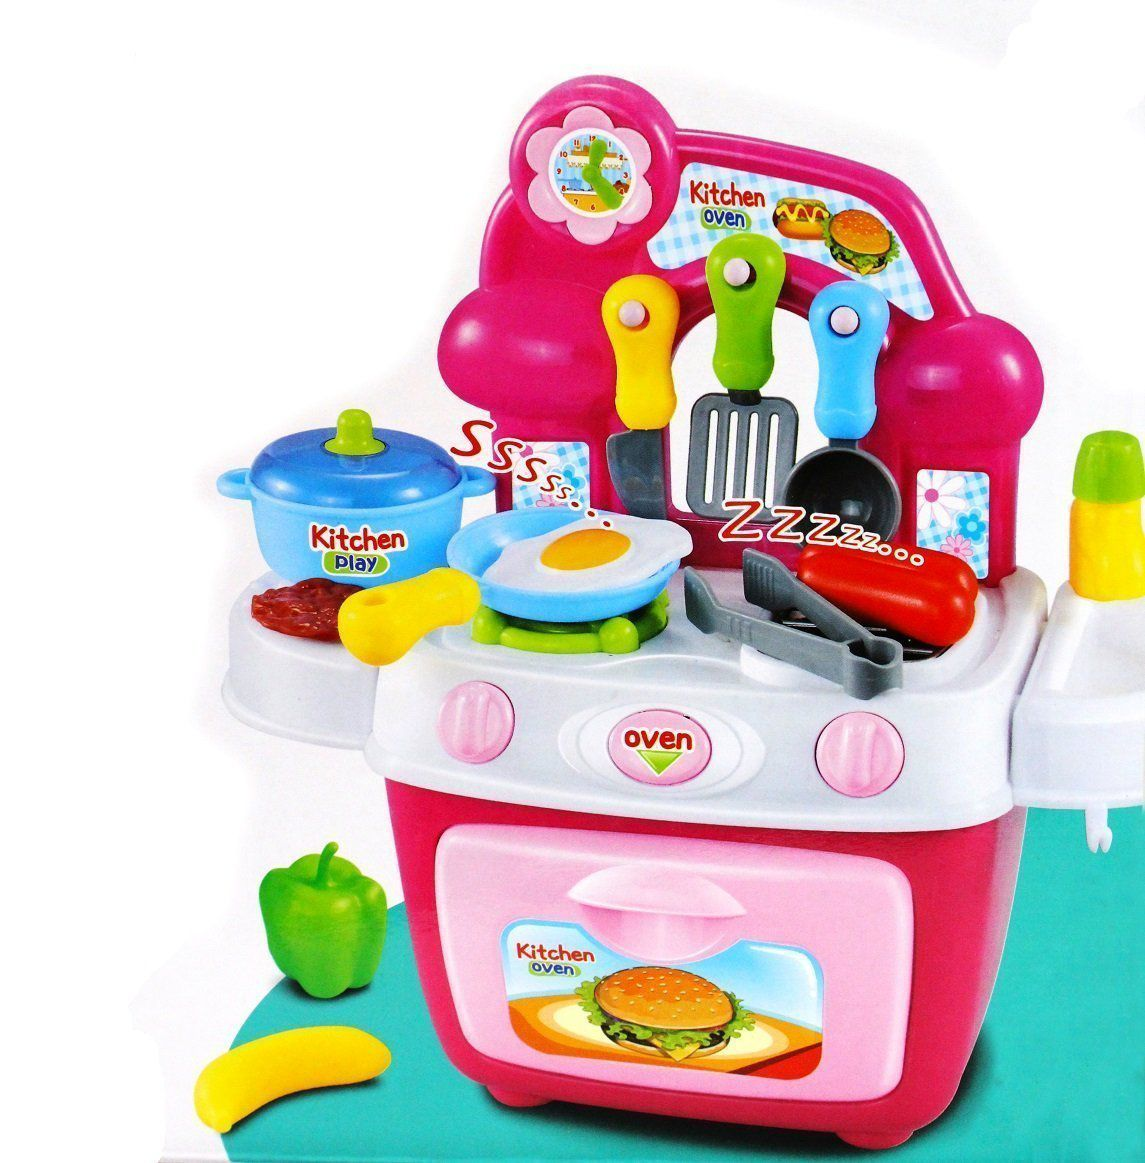 Pepperonz Portable Battery Operated Kitchen Oven Play Set For Kids